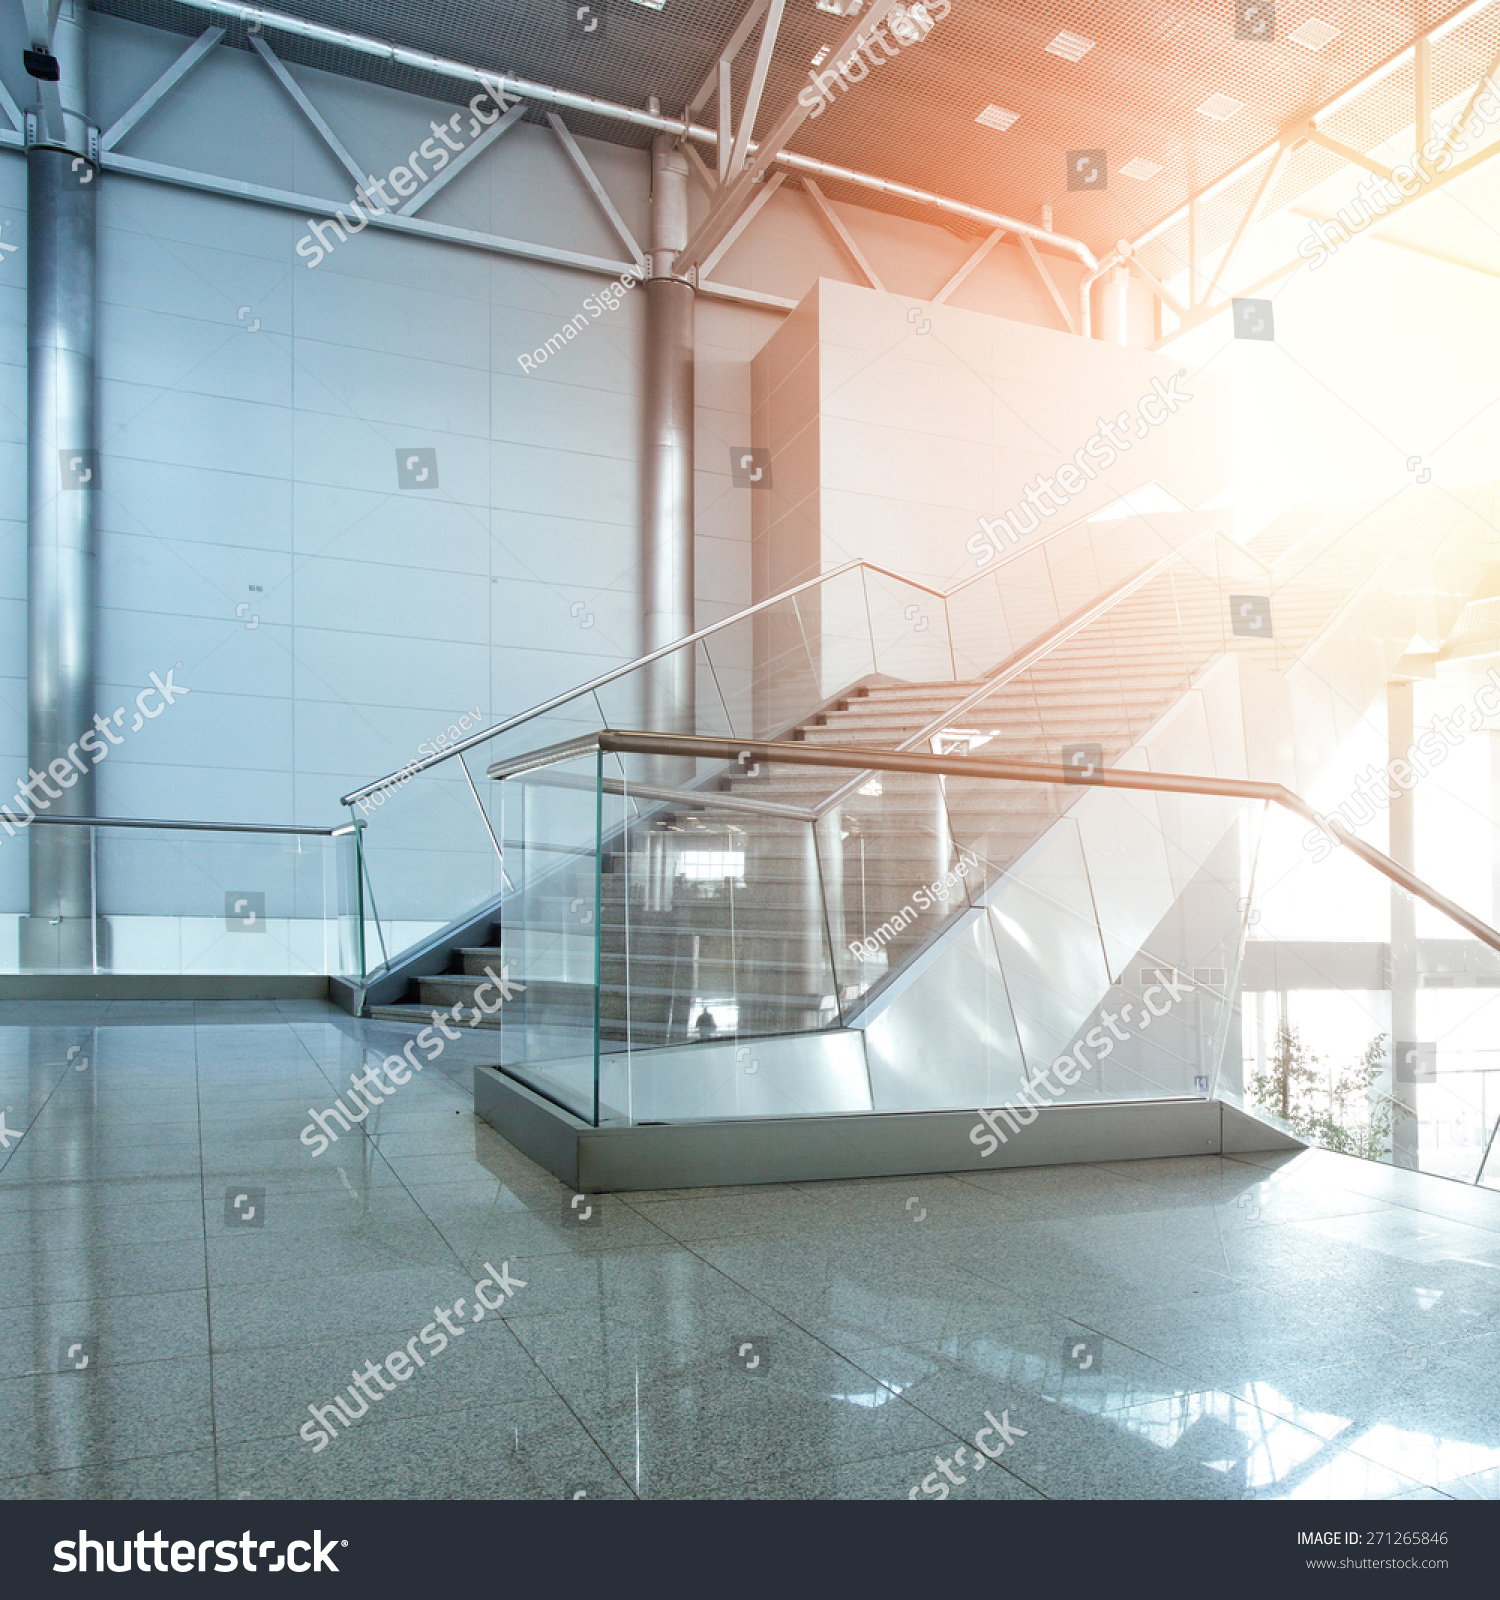 Interior of modern office building stock photo 271265846 for Modern office building interior